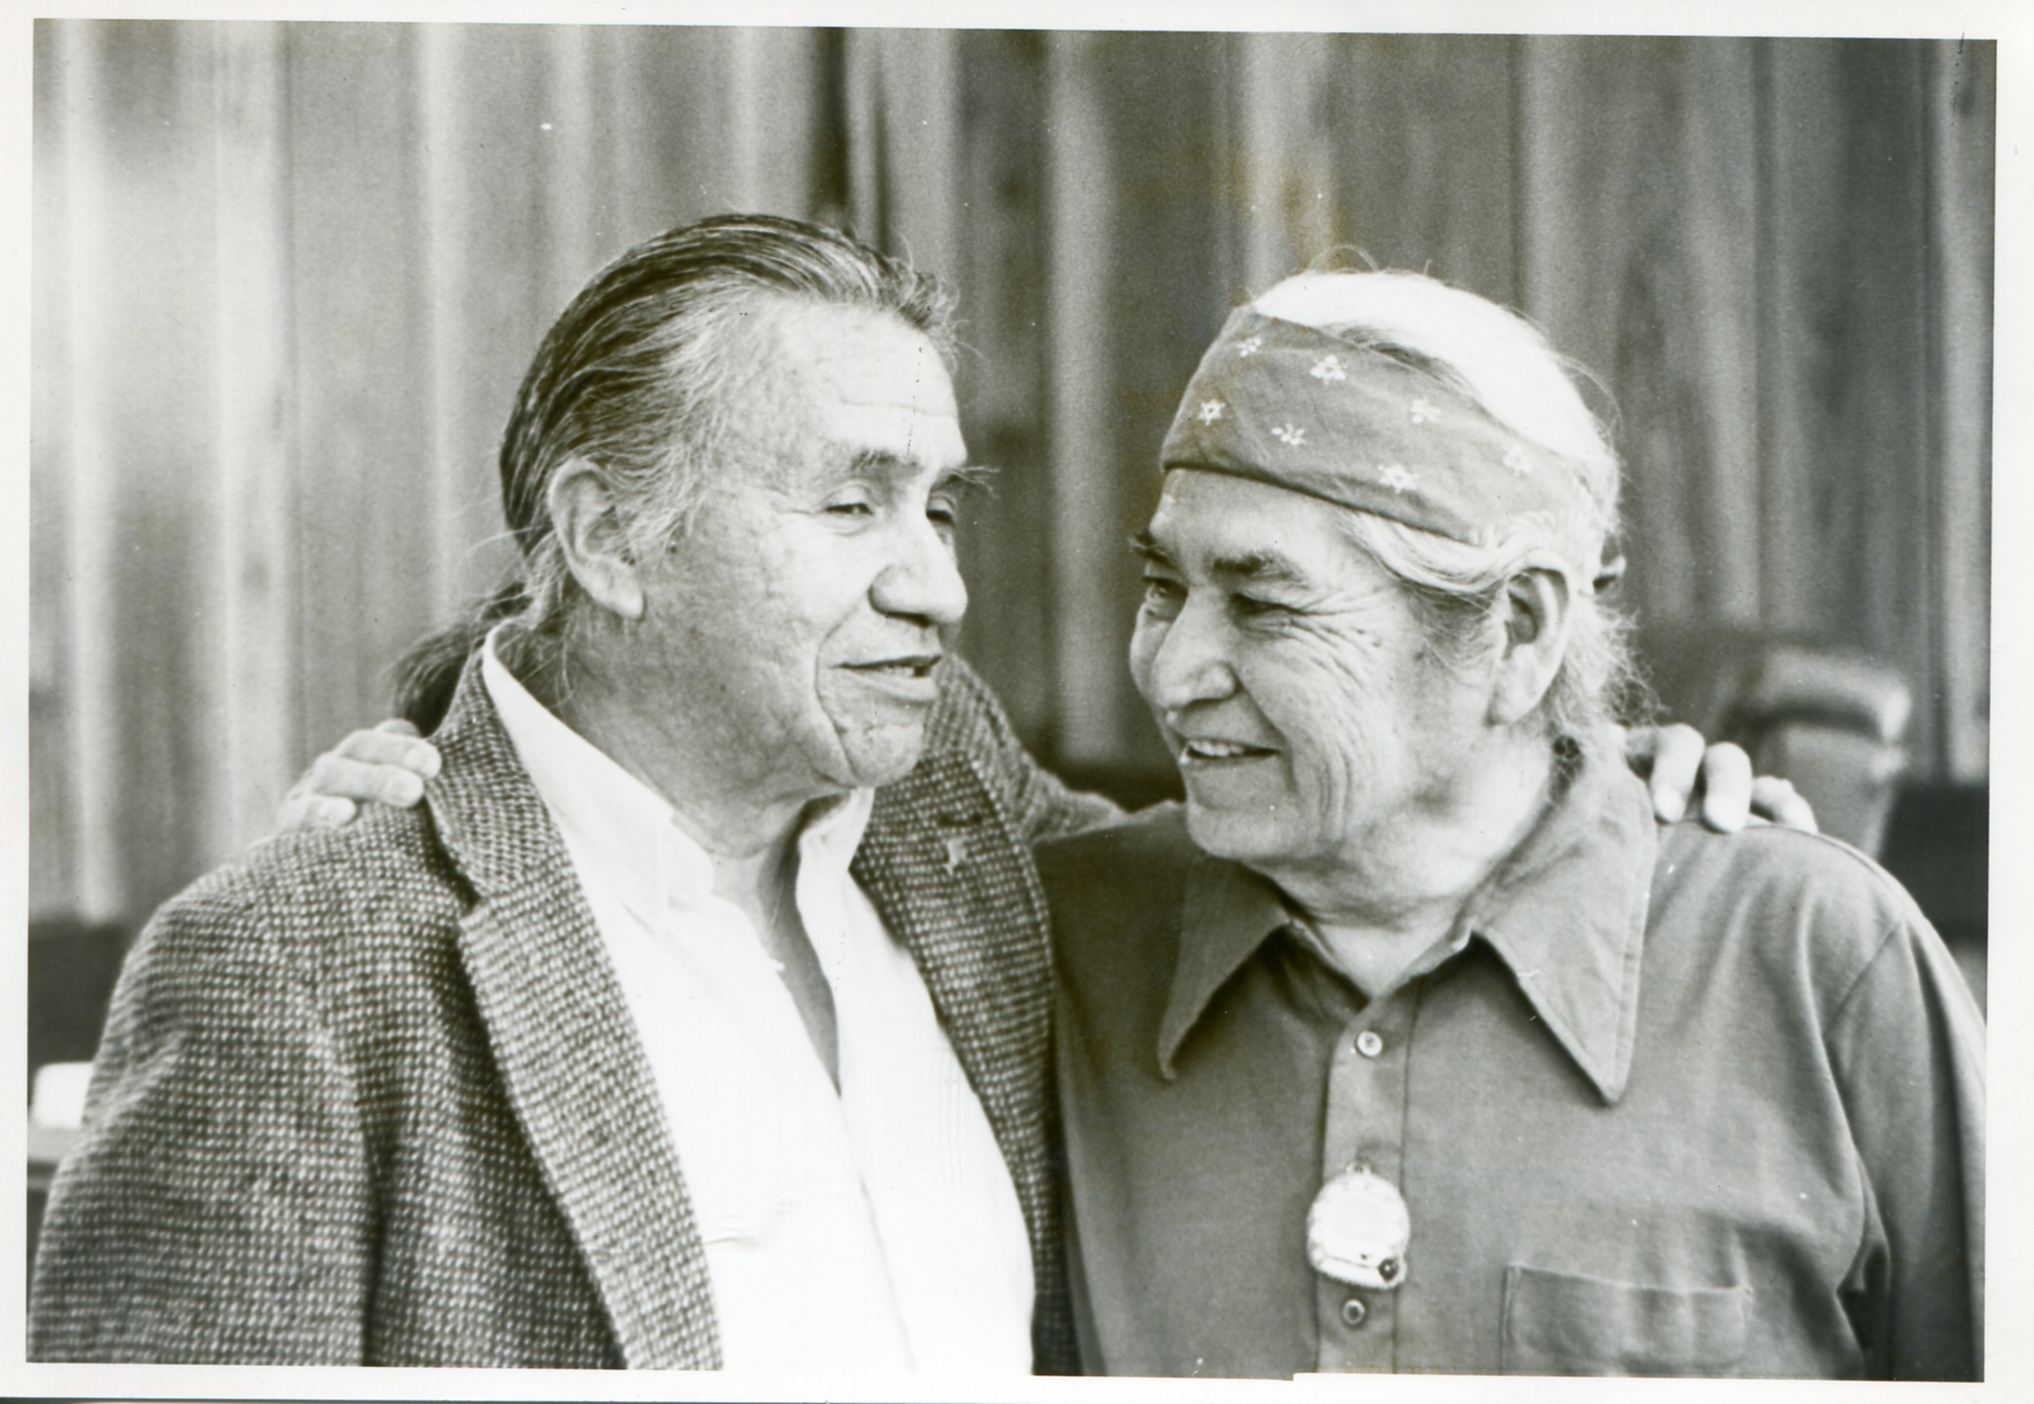 Billy Frank Jr and David Sohappy in Yakama Tribal Court